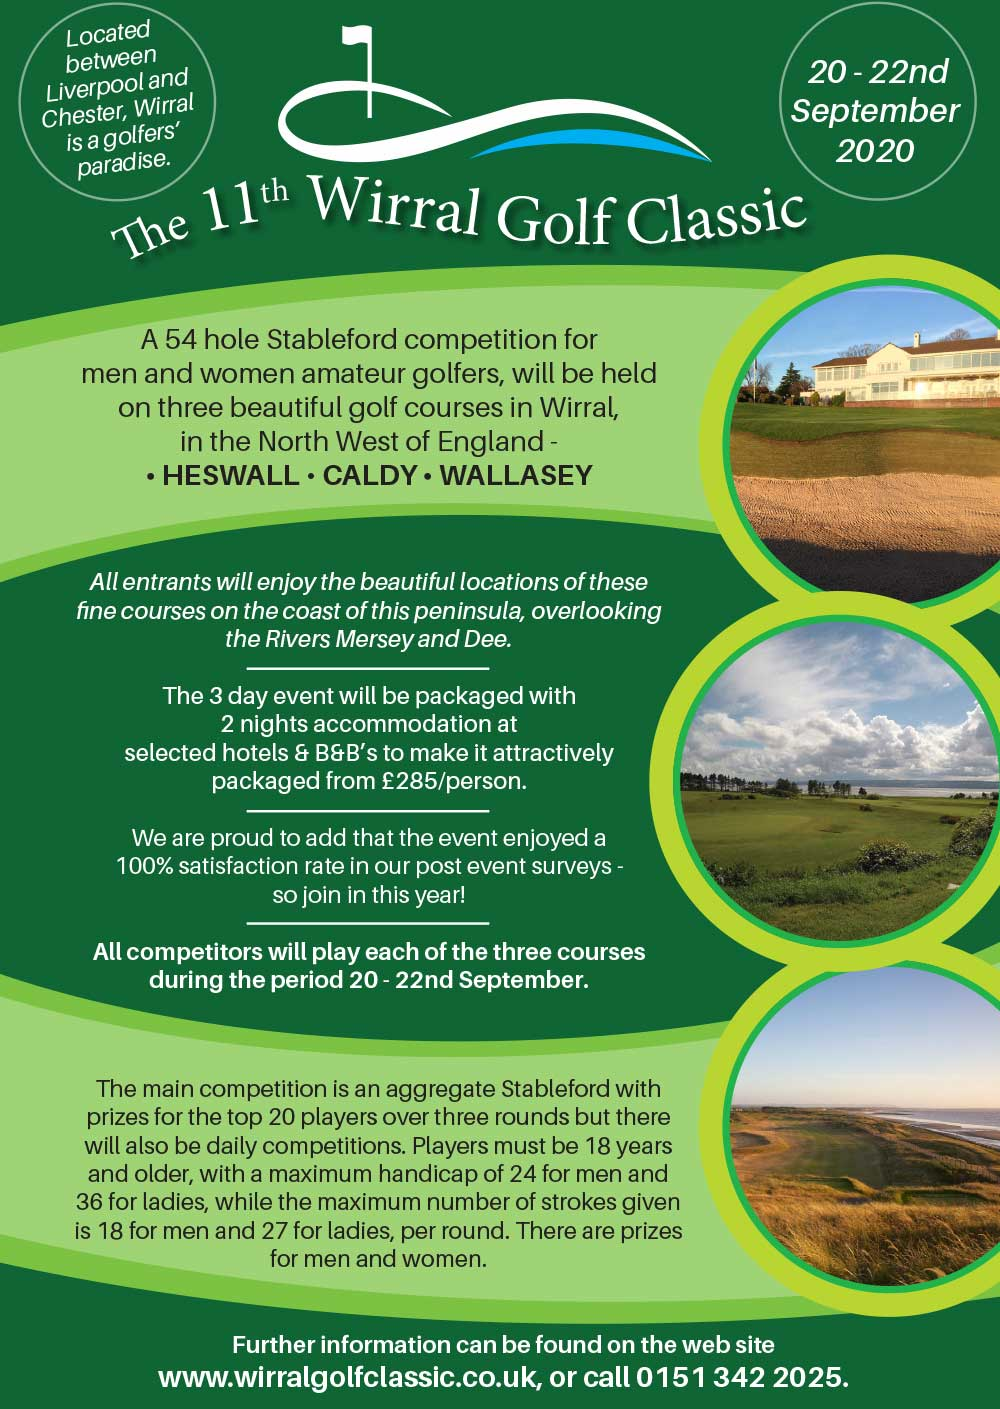 The 11th Wirral Golf Classic, 20-22nd September 2020